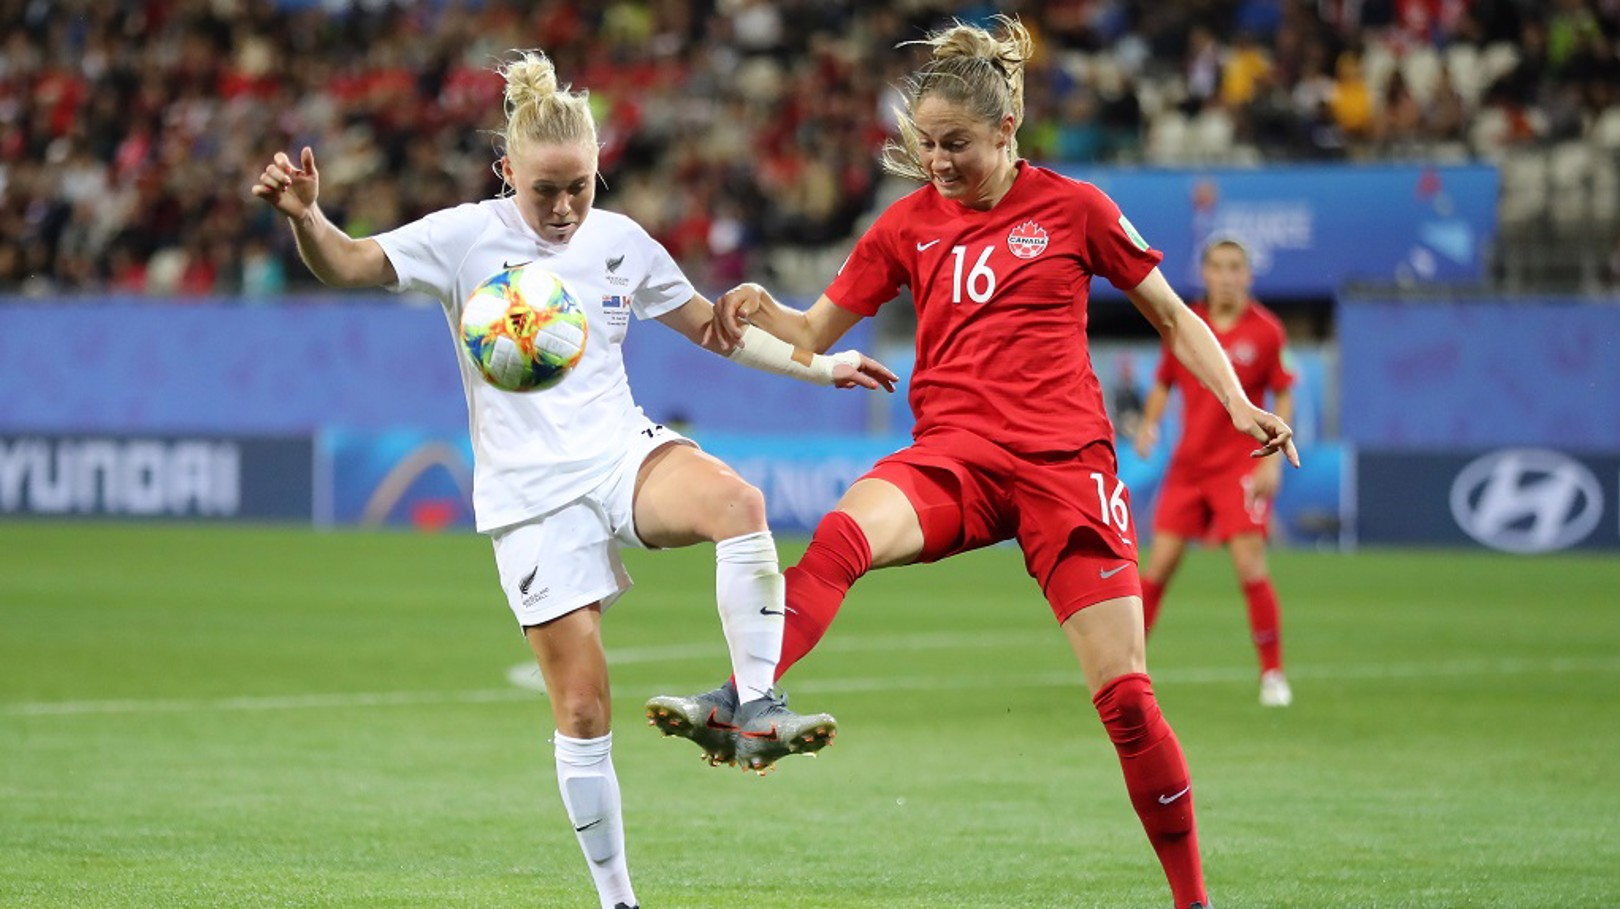 Beckie shines as impressive Canada progress